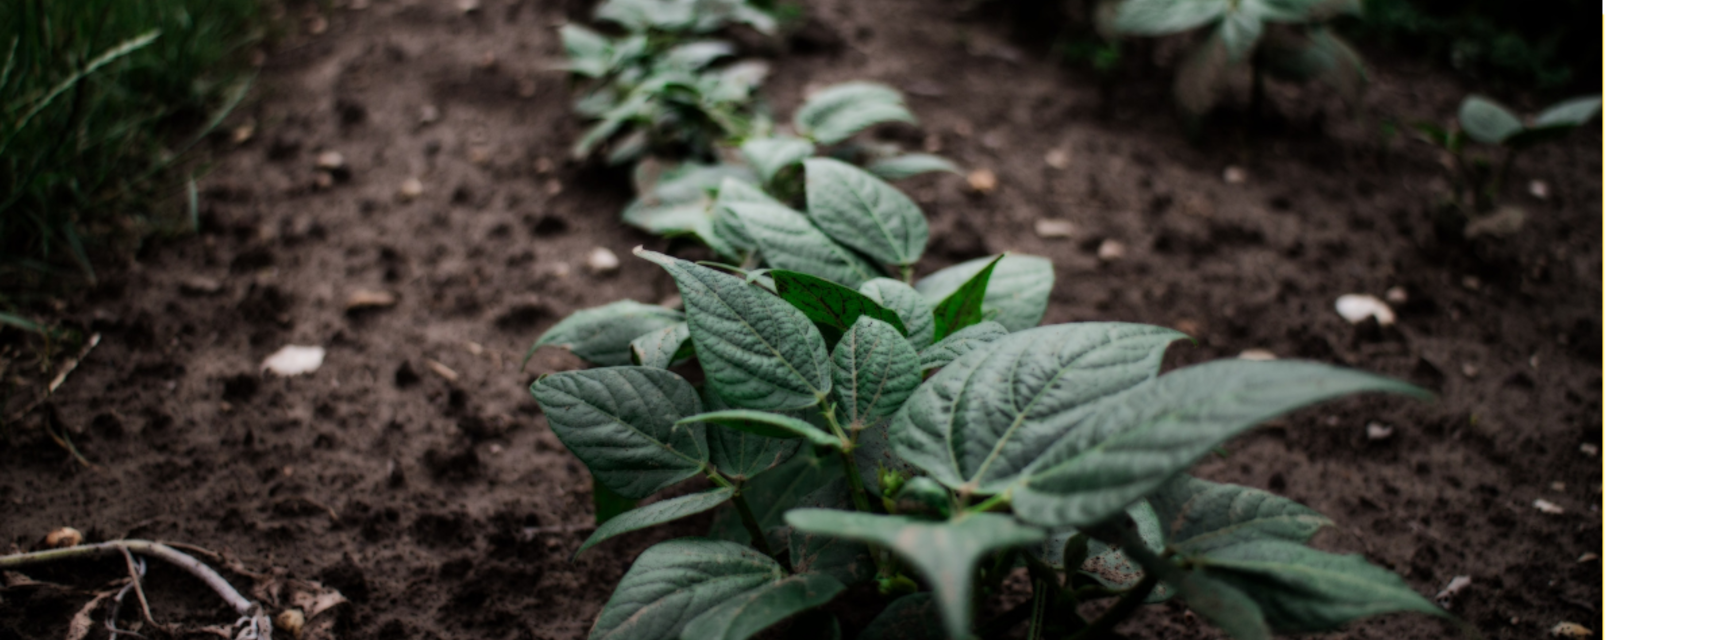 Photo of rows of vegetable tops emerging from the soil